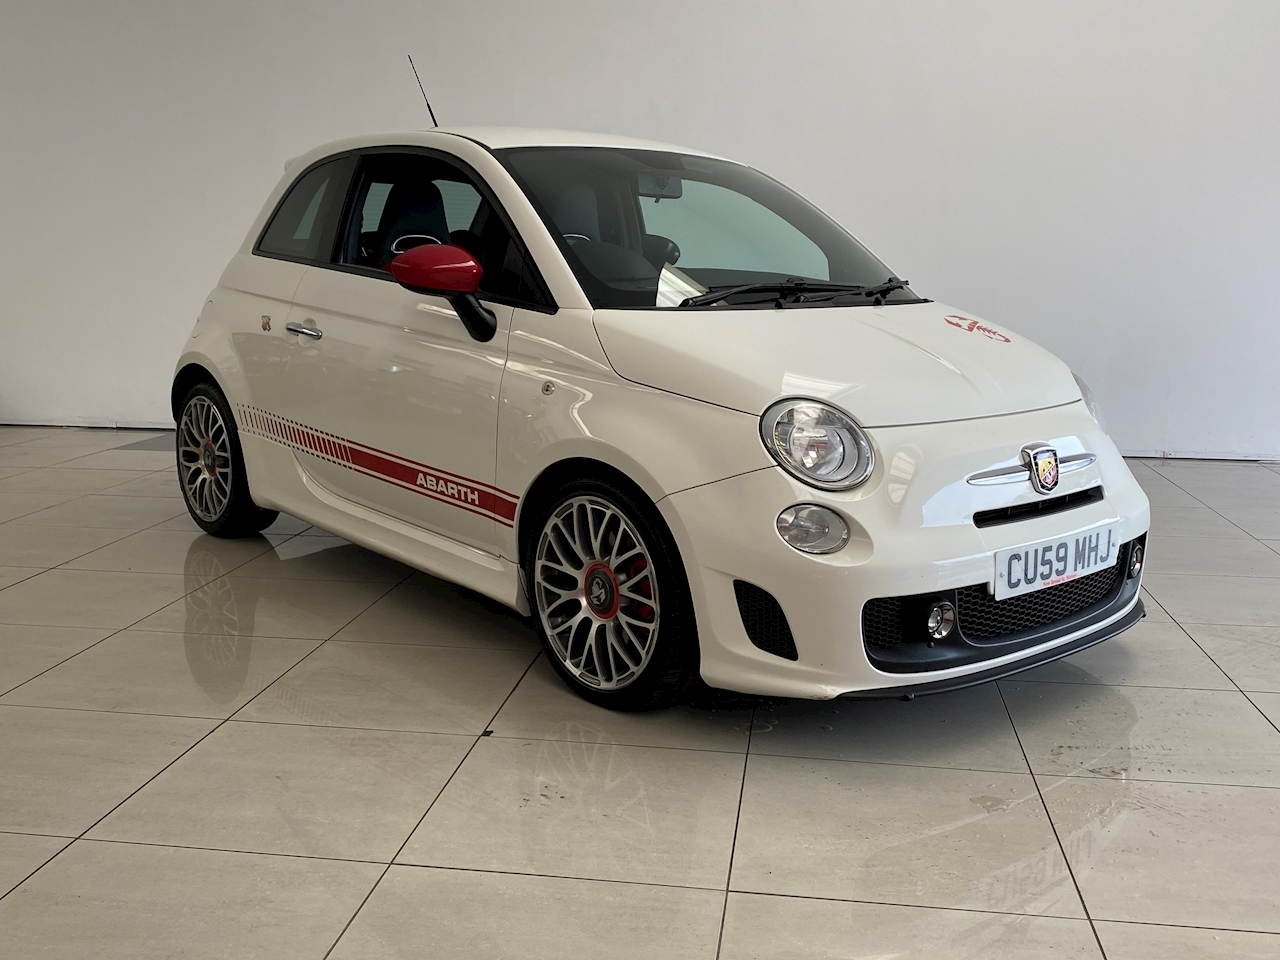 Abarth Fiat 500 Abarth 1.4 16v Turbo Hatchback 1.4 Manual Petrol